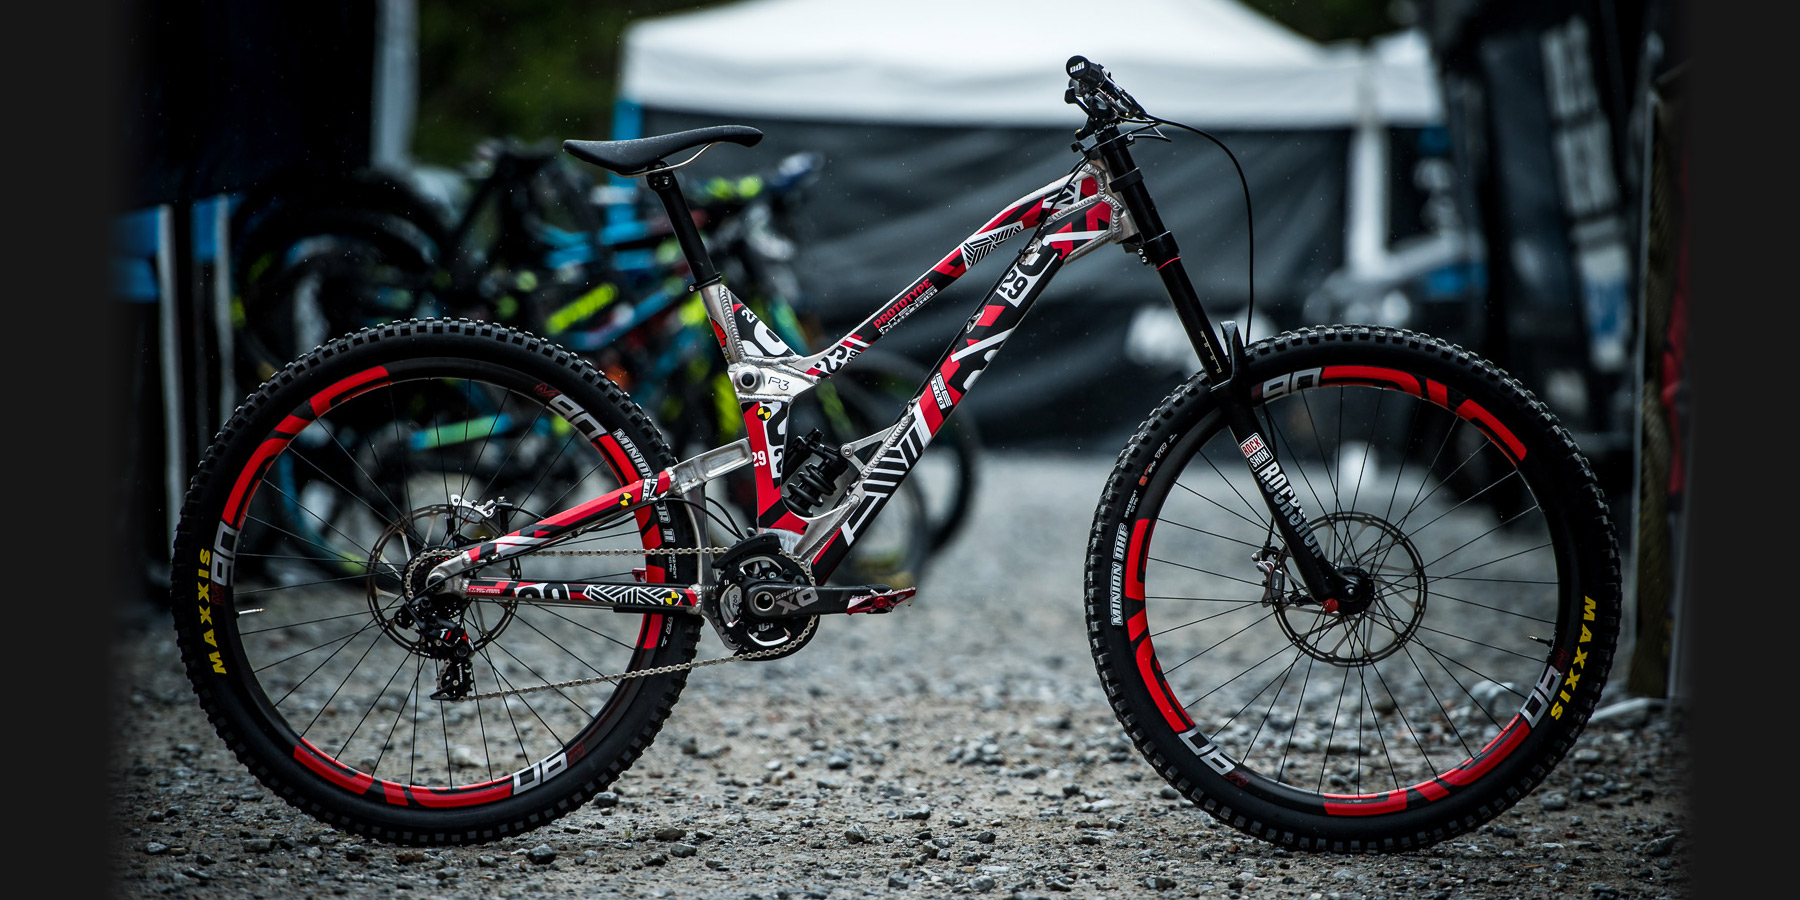 Intense Will Make Just 15 M29 Fro 29er Downhill Bikes Available For Purchase Singletracks Mountain Bike News Shop from the world's largest selection and best deals for intense bikes. intense will make just 15 m29 fro 29er